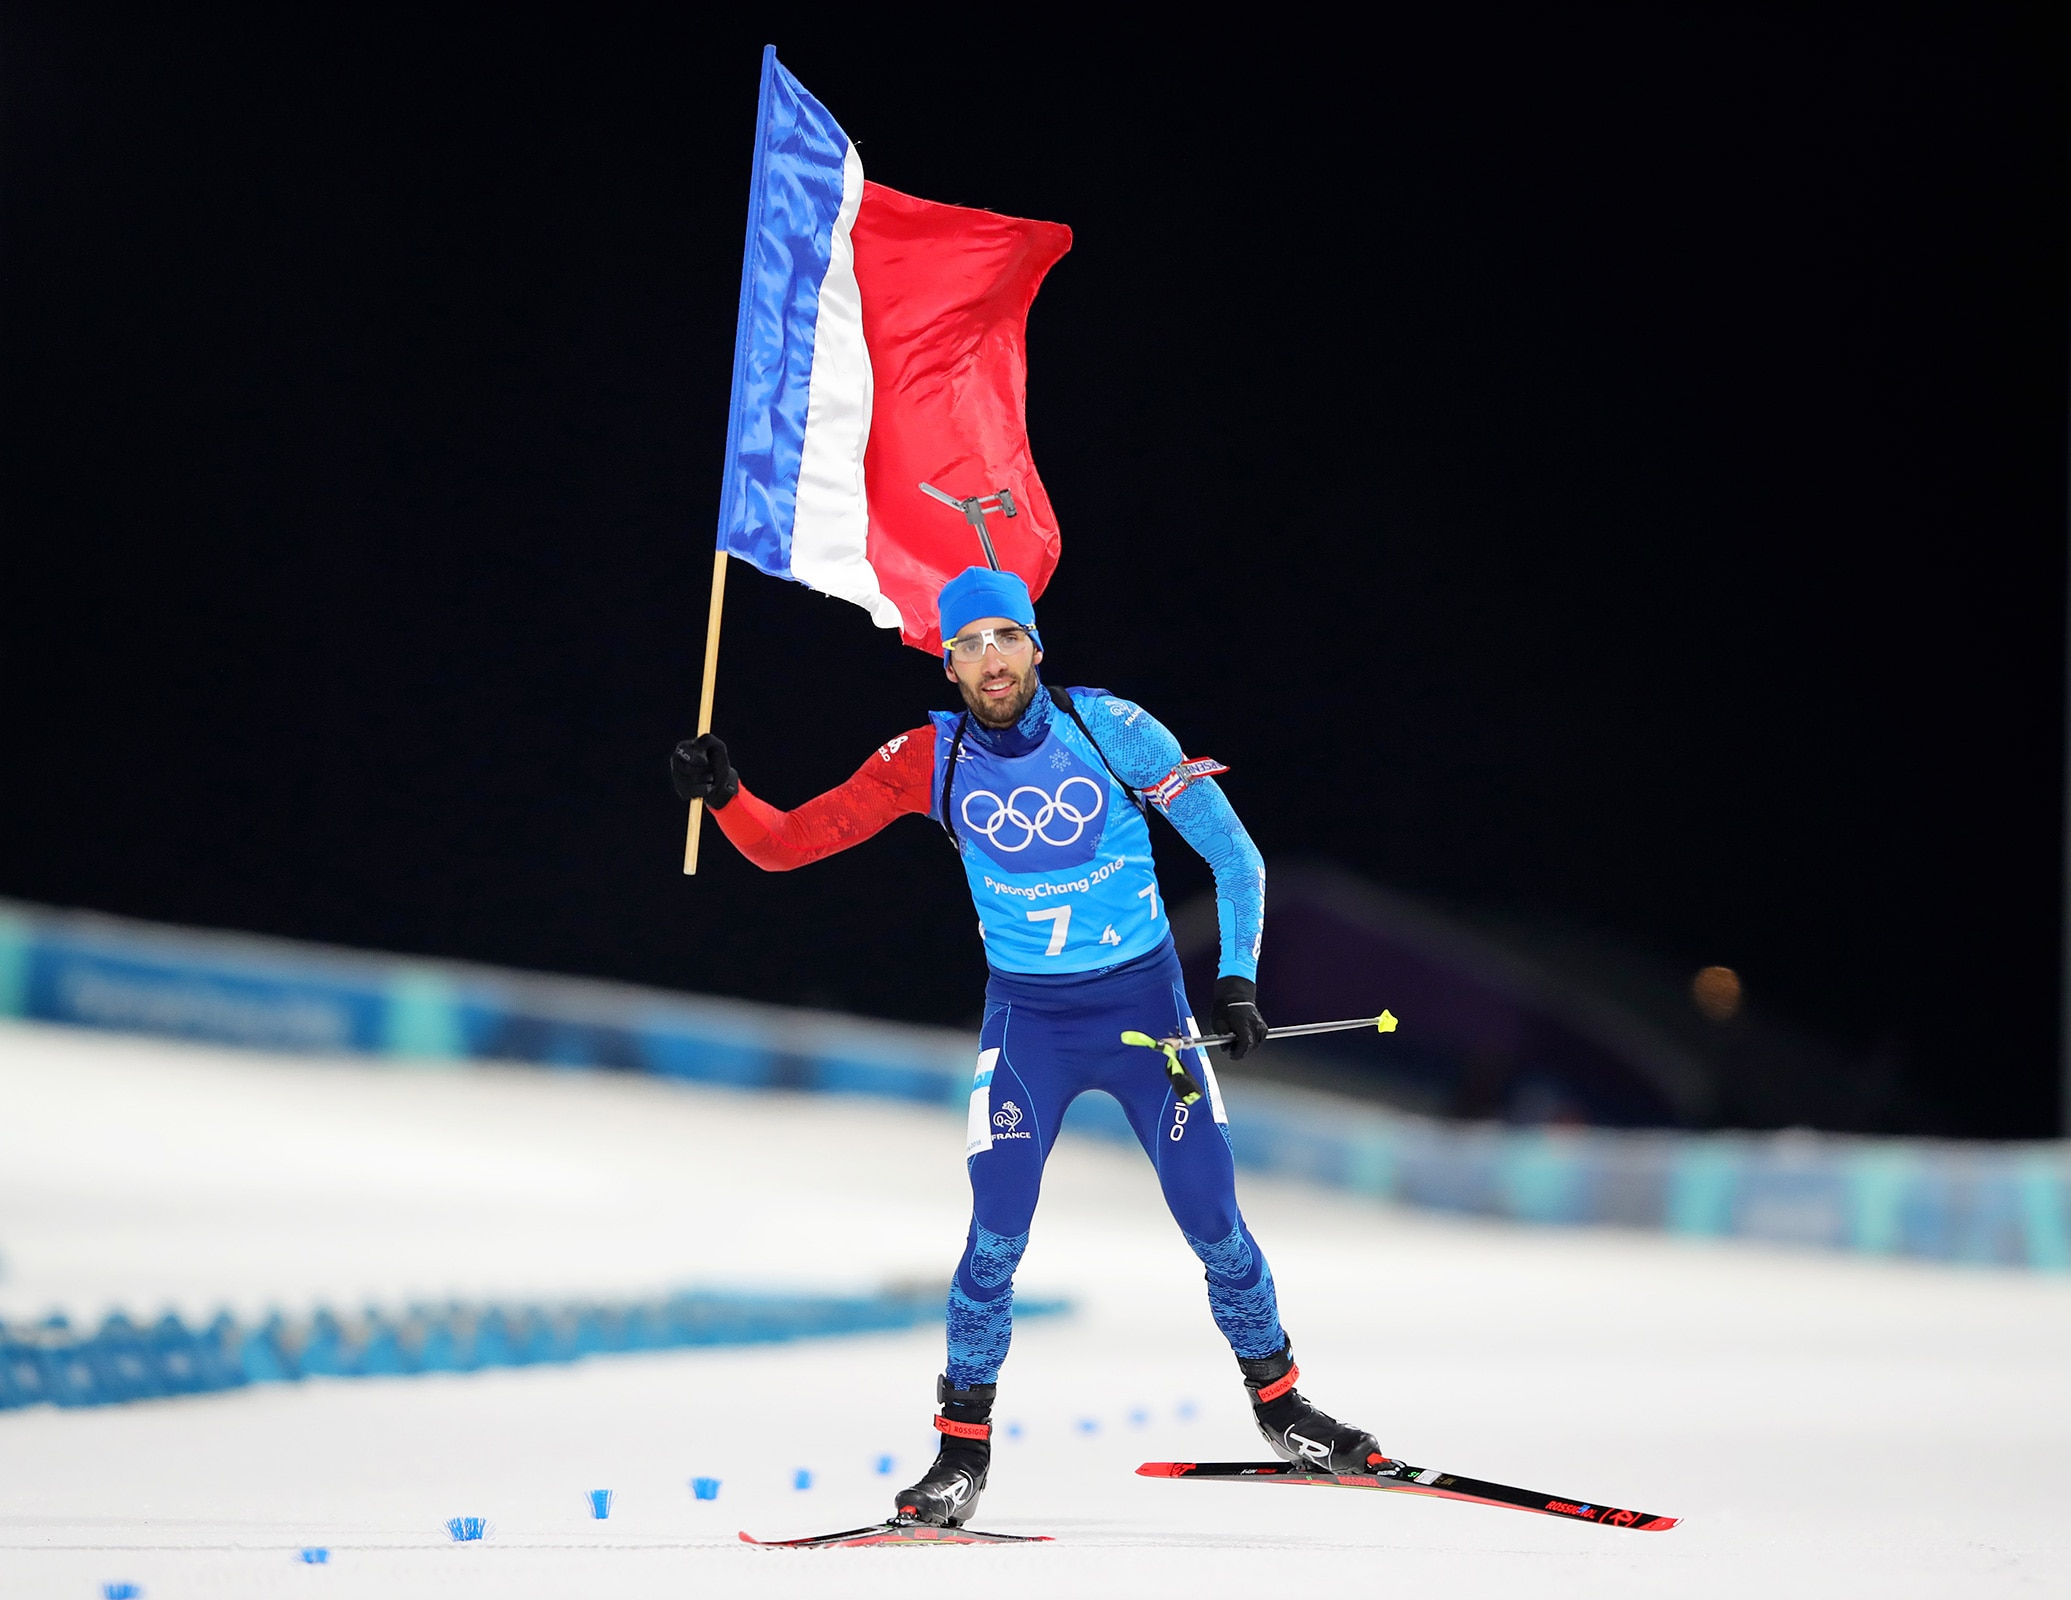 Biathlon - 2x6km Women + 2x7.5km Men Mixed Relay